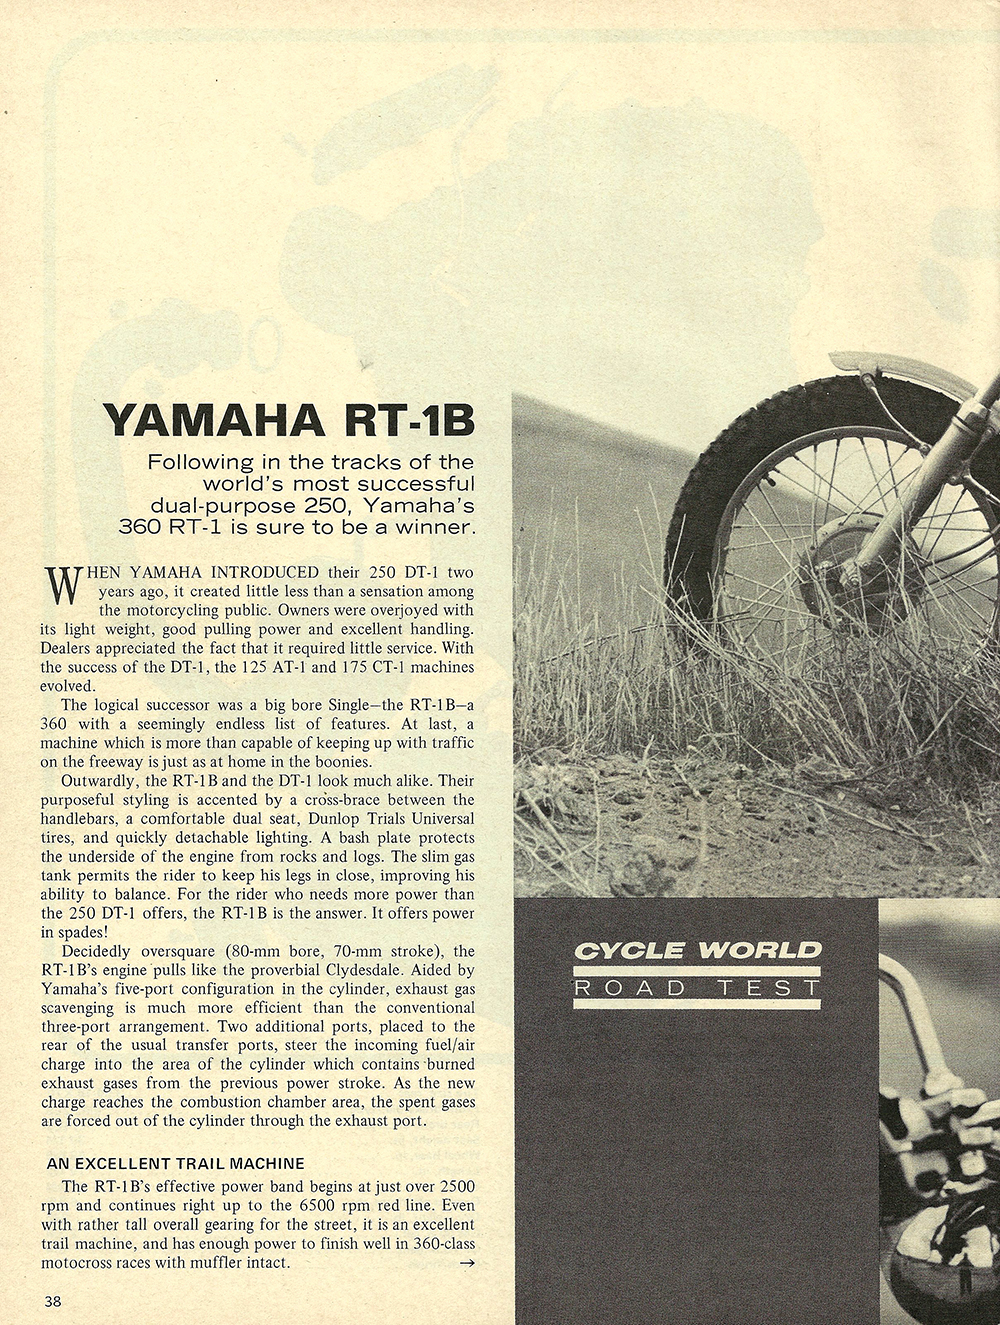 1971 Yamaha RT-1B road test 01.jpg